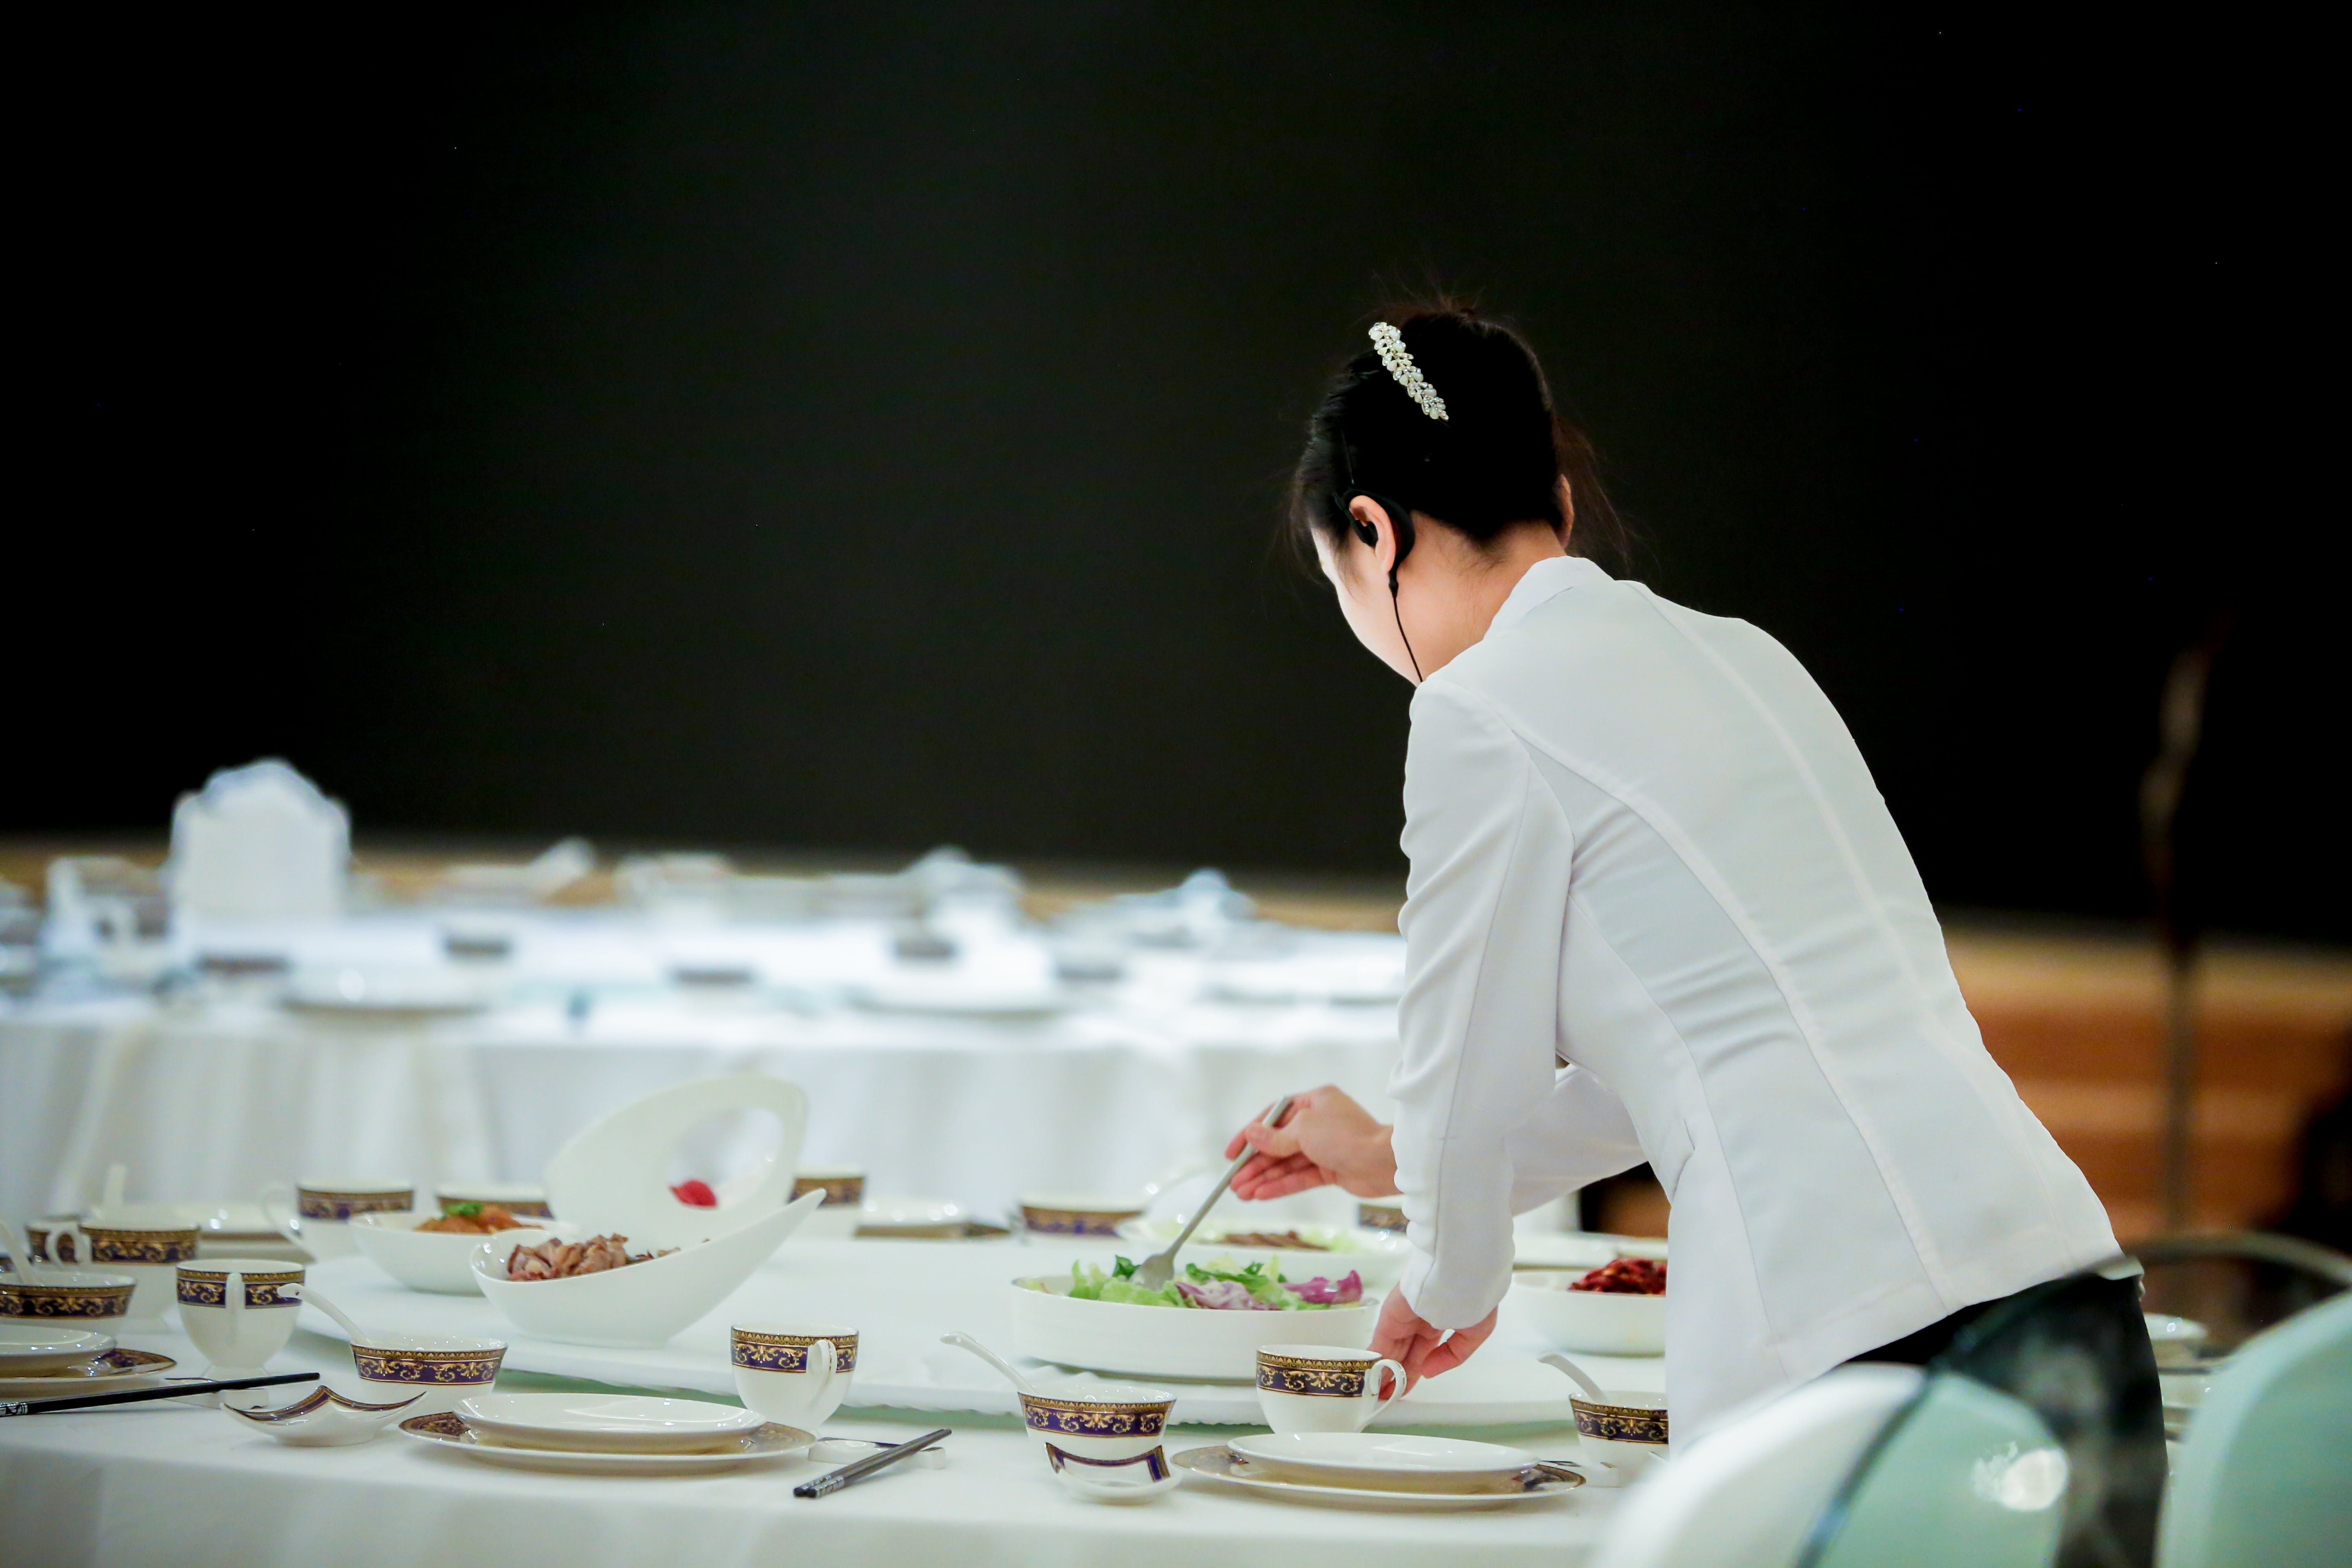 Woman Preparing Dish on Table